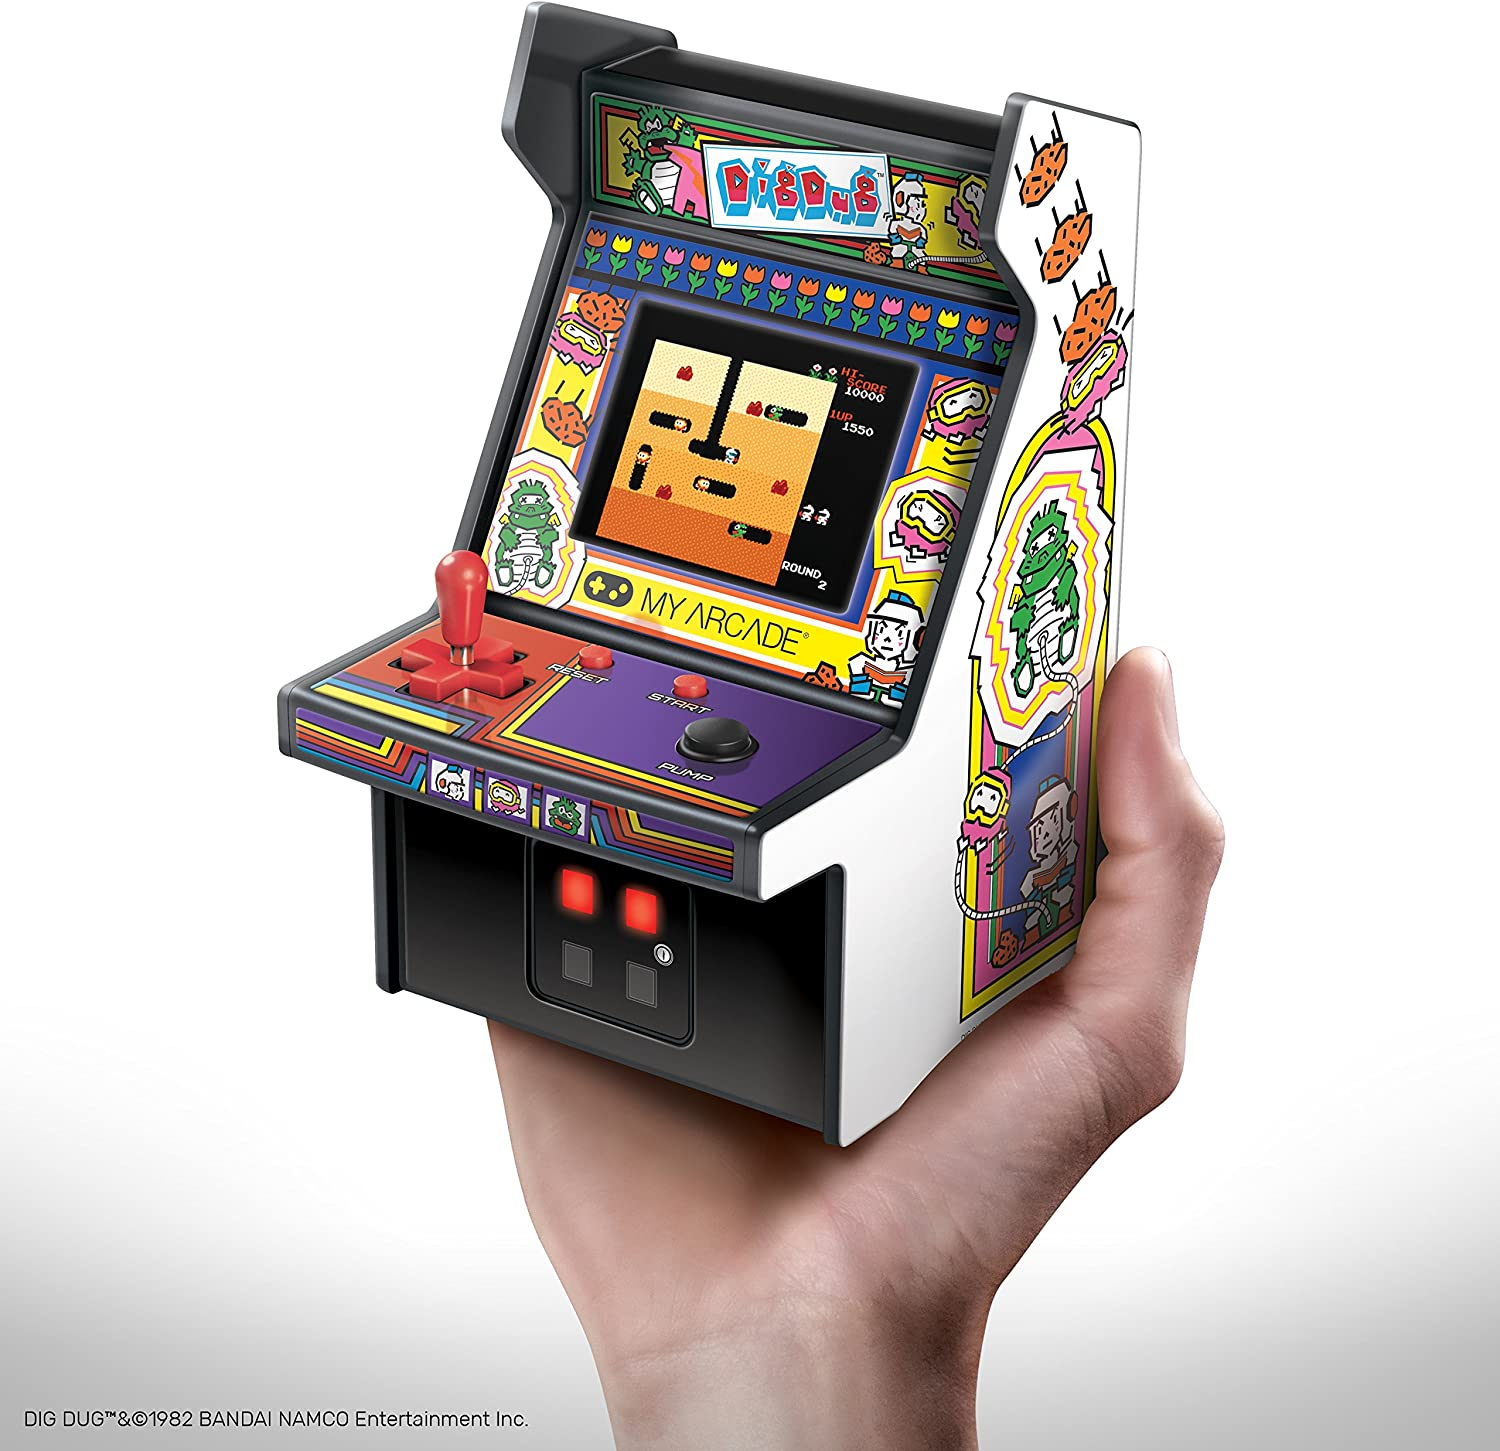 Amazon Com My Arcade Dig Dug Micro Player White 3221 Toys Games Miss dig is michigan's only utility safety notification system. my arcade dig dug micro player white 3221